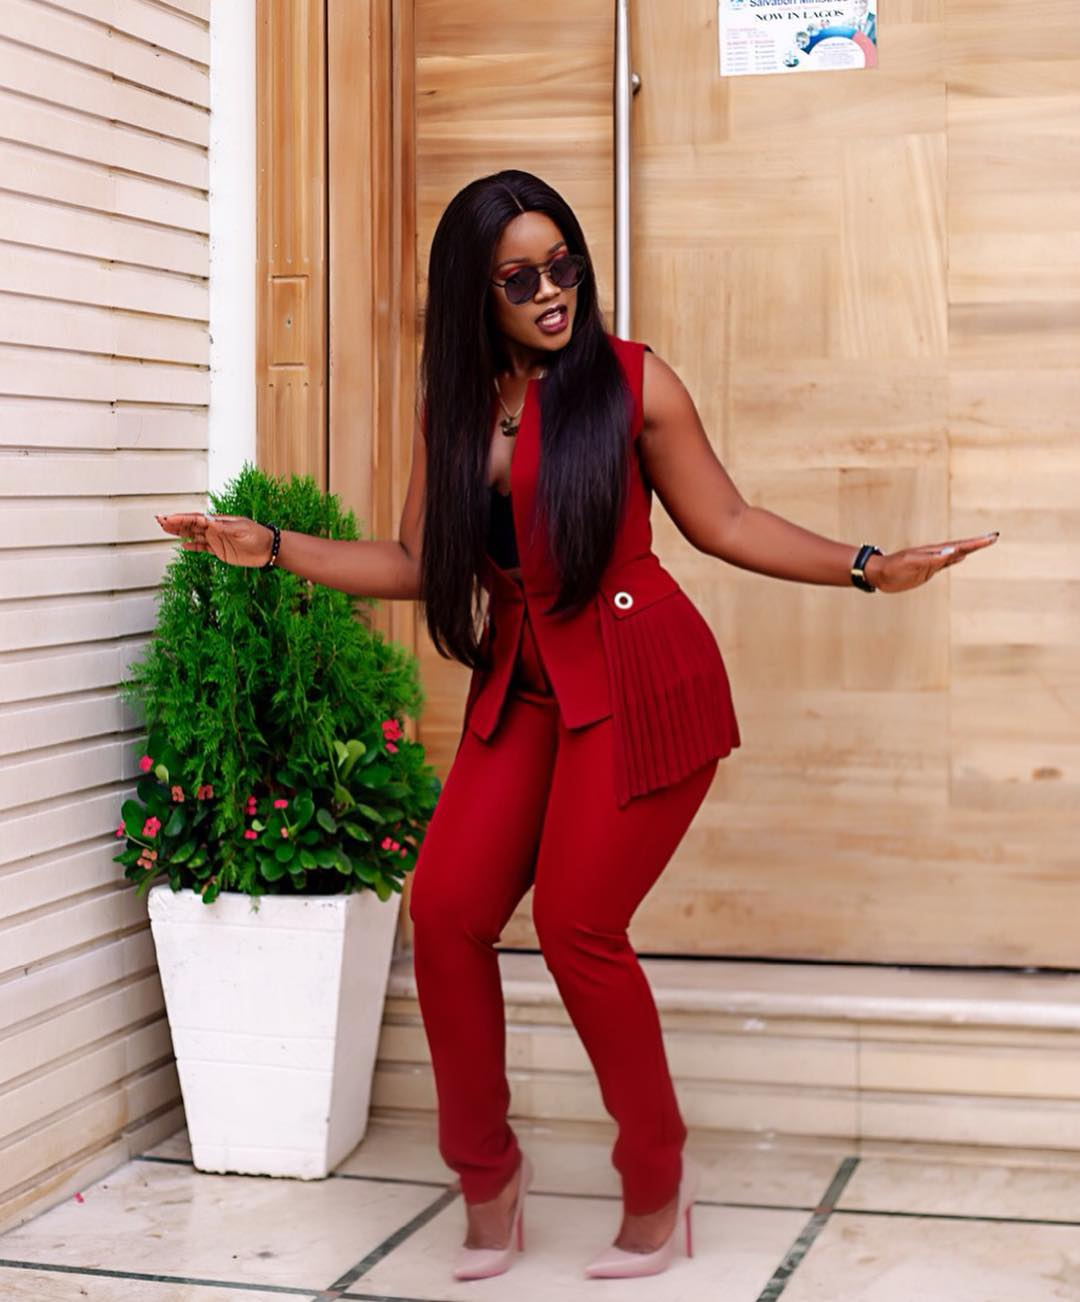 Cee-C sends fans into meltdown as she poses in red corporate outfit (Photos)